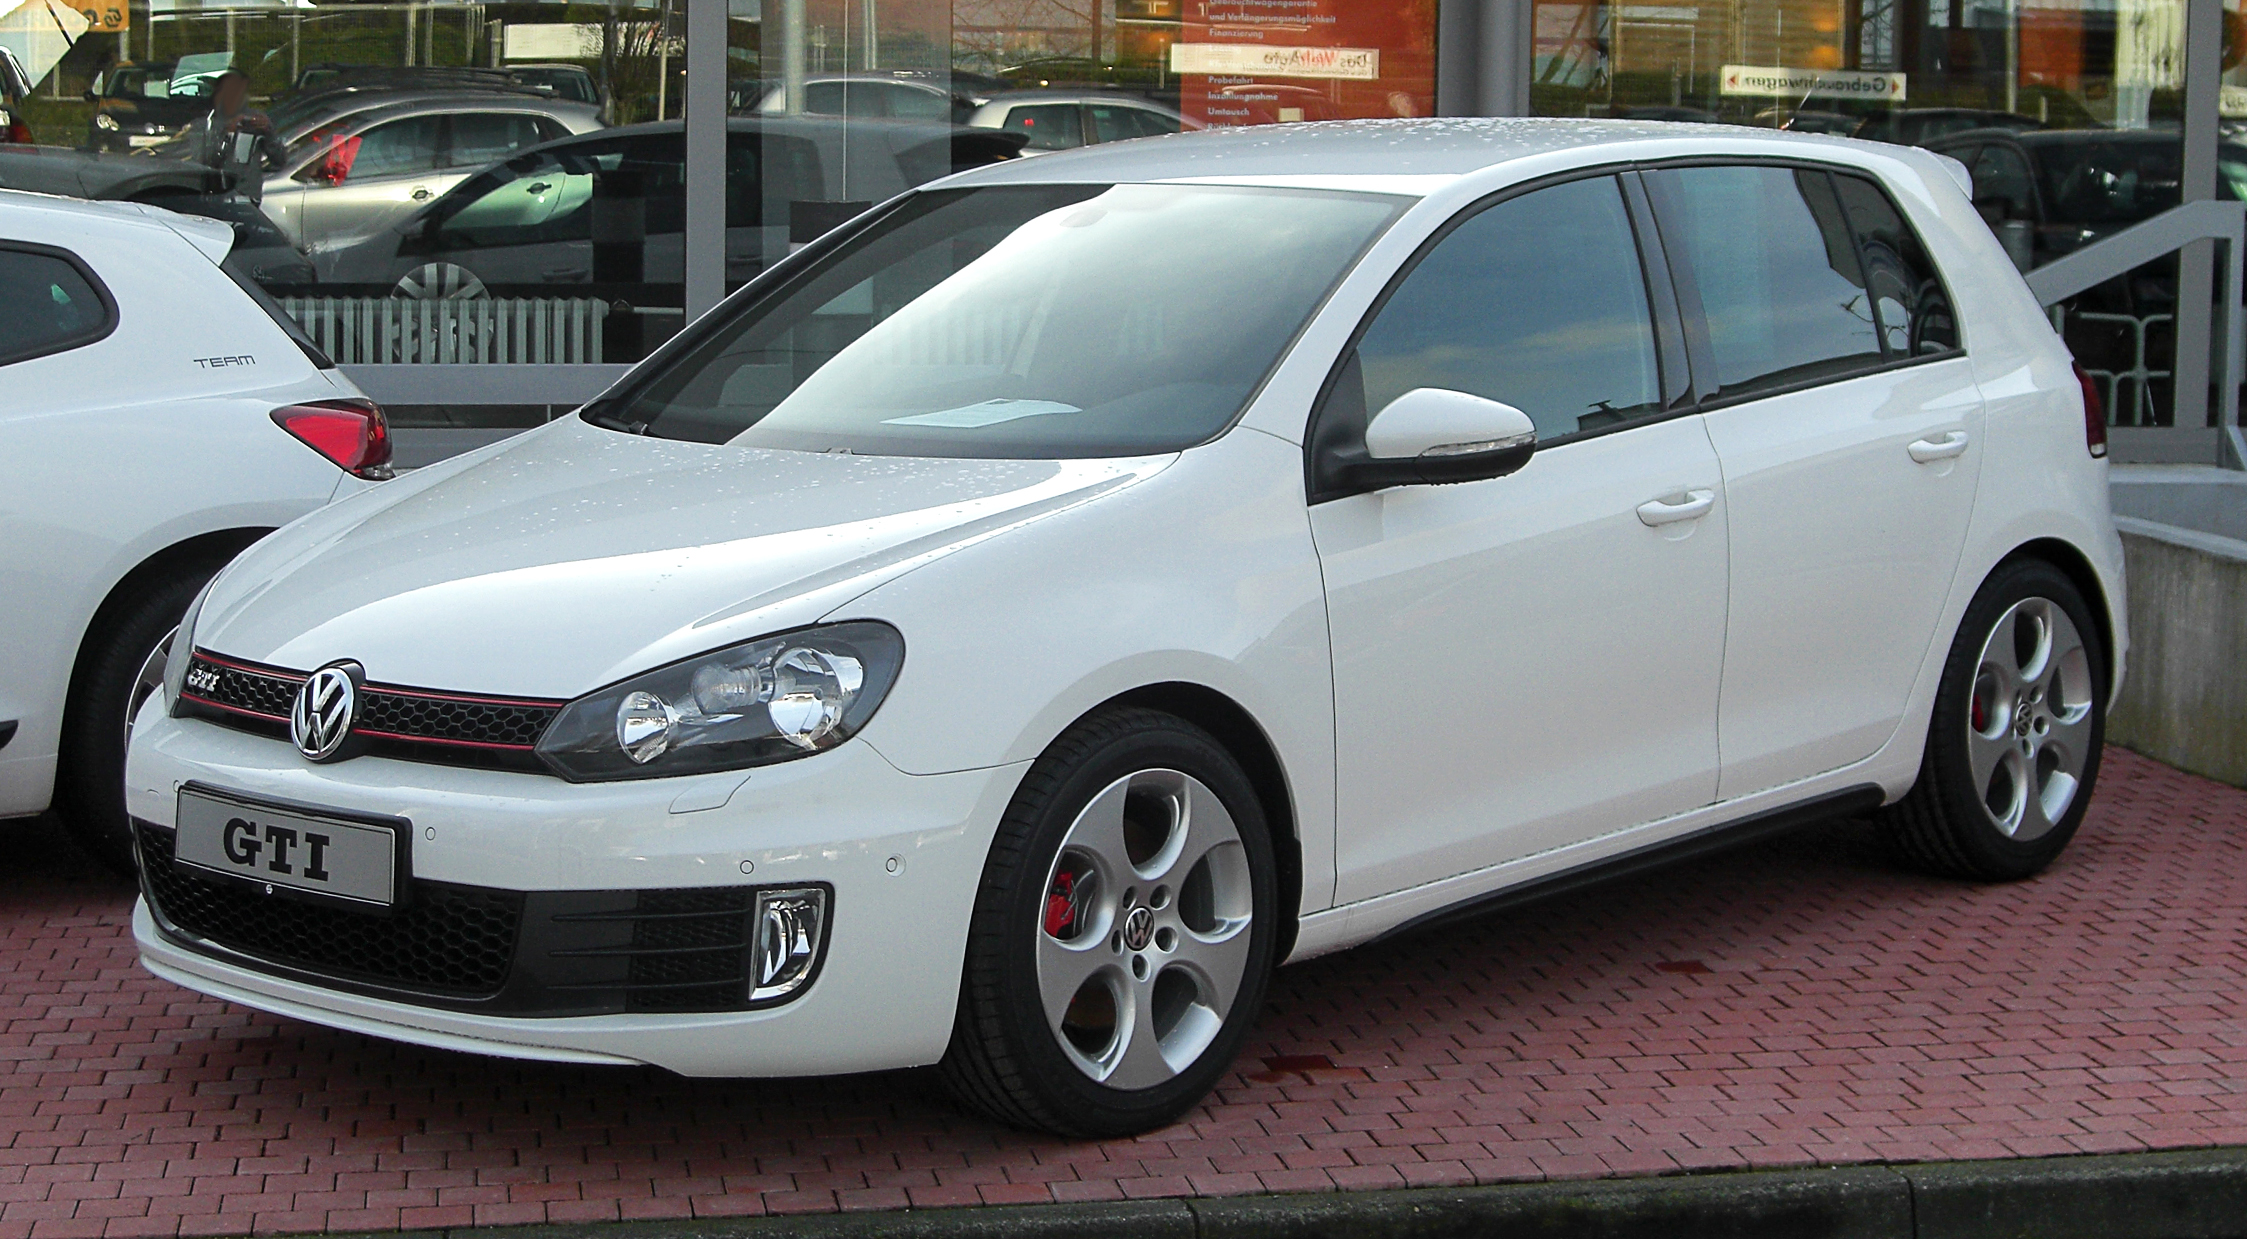 Volkswagen Golf Gti 2011 Amazing Pictures And Images Look At The Car